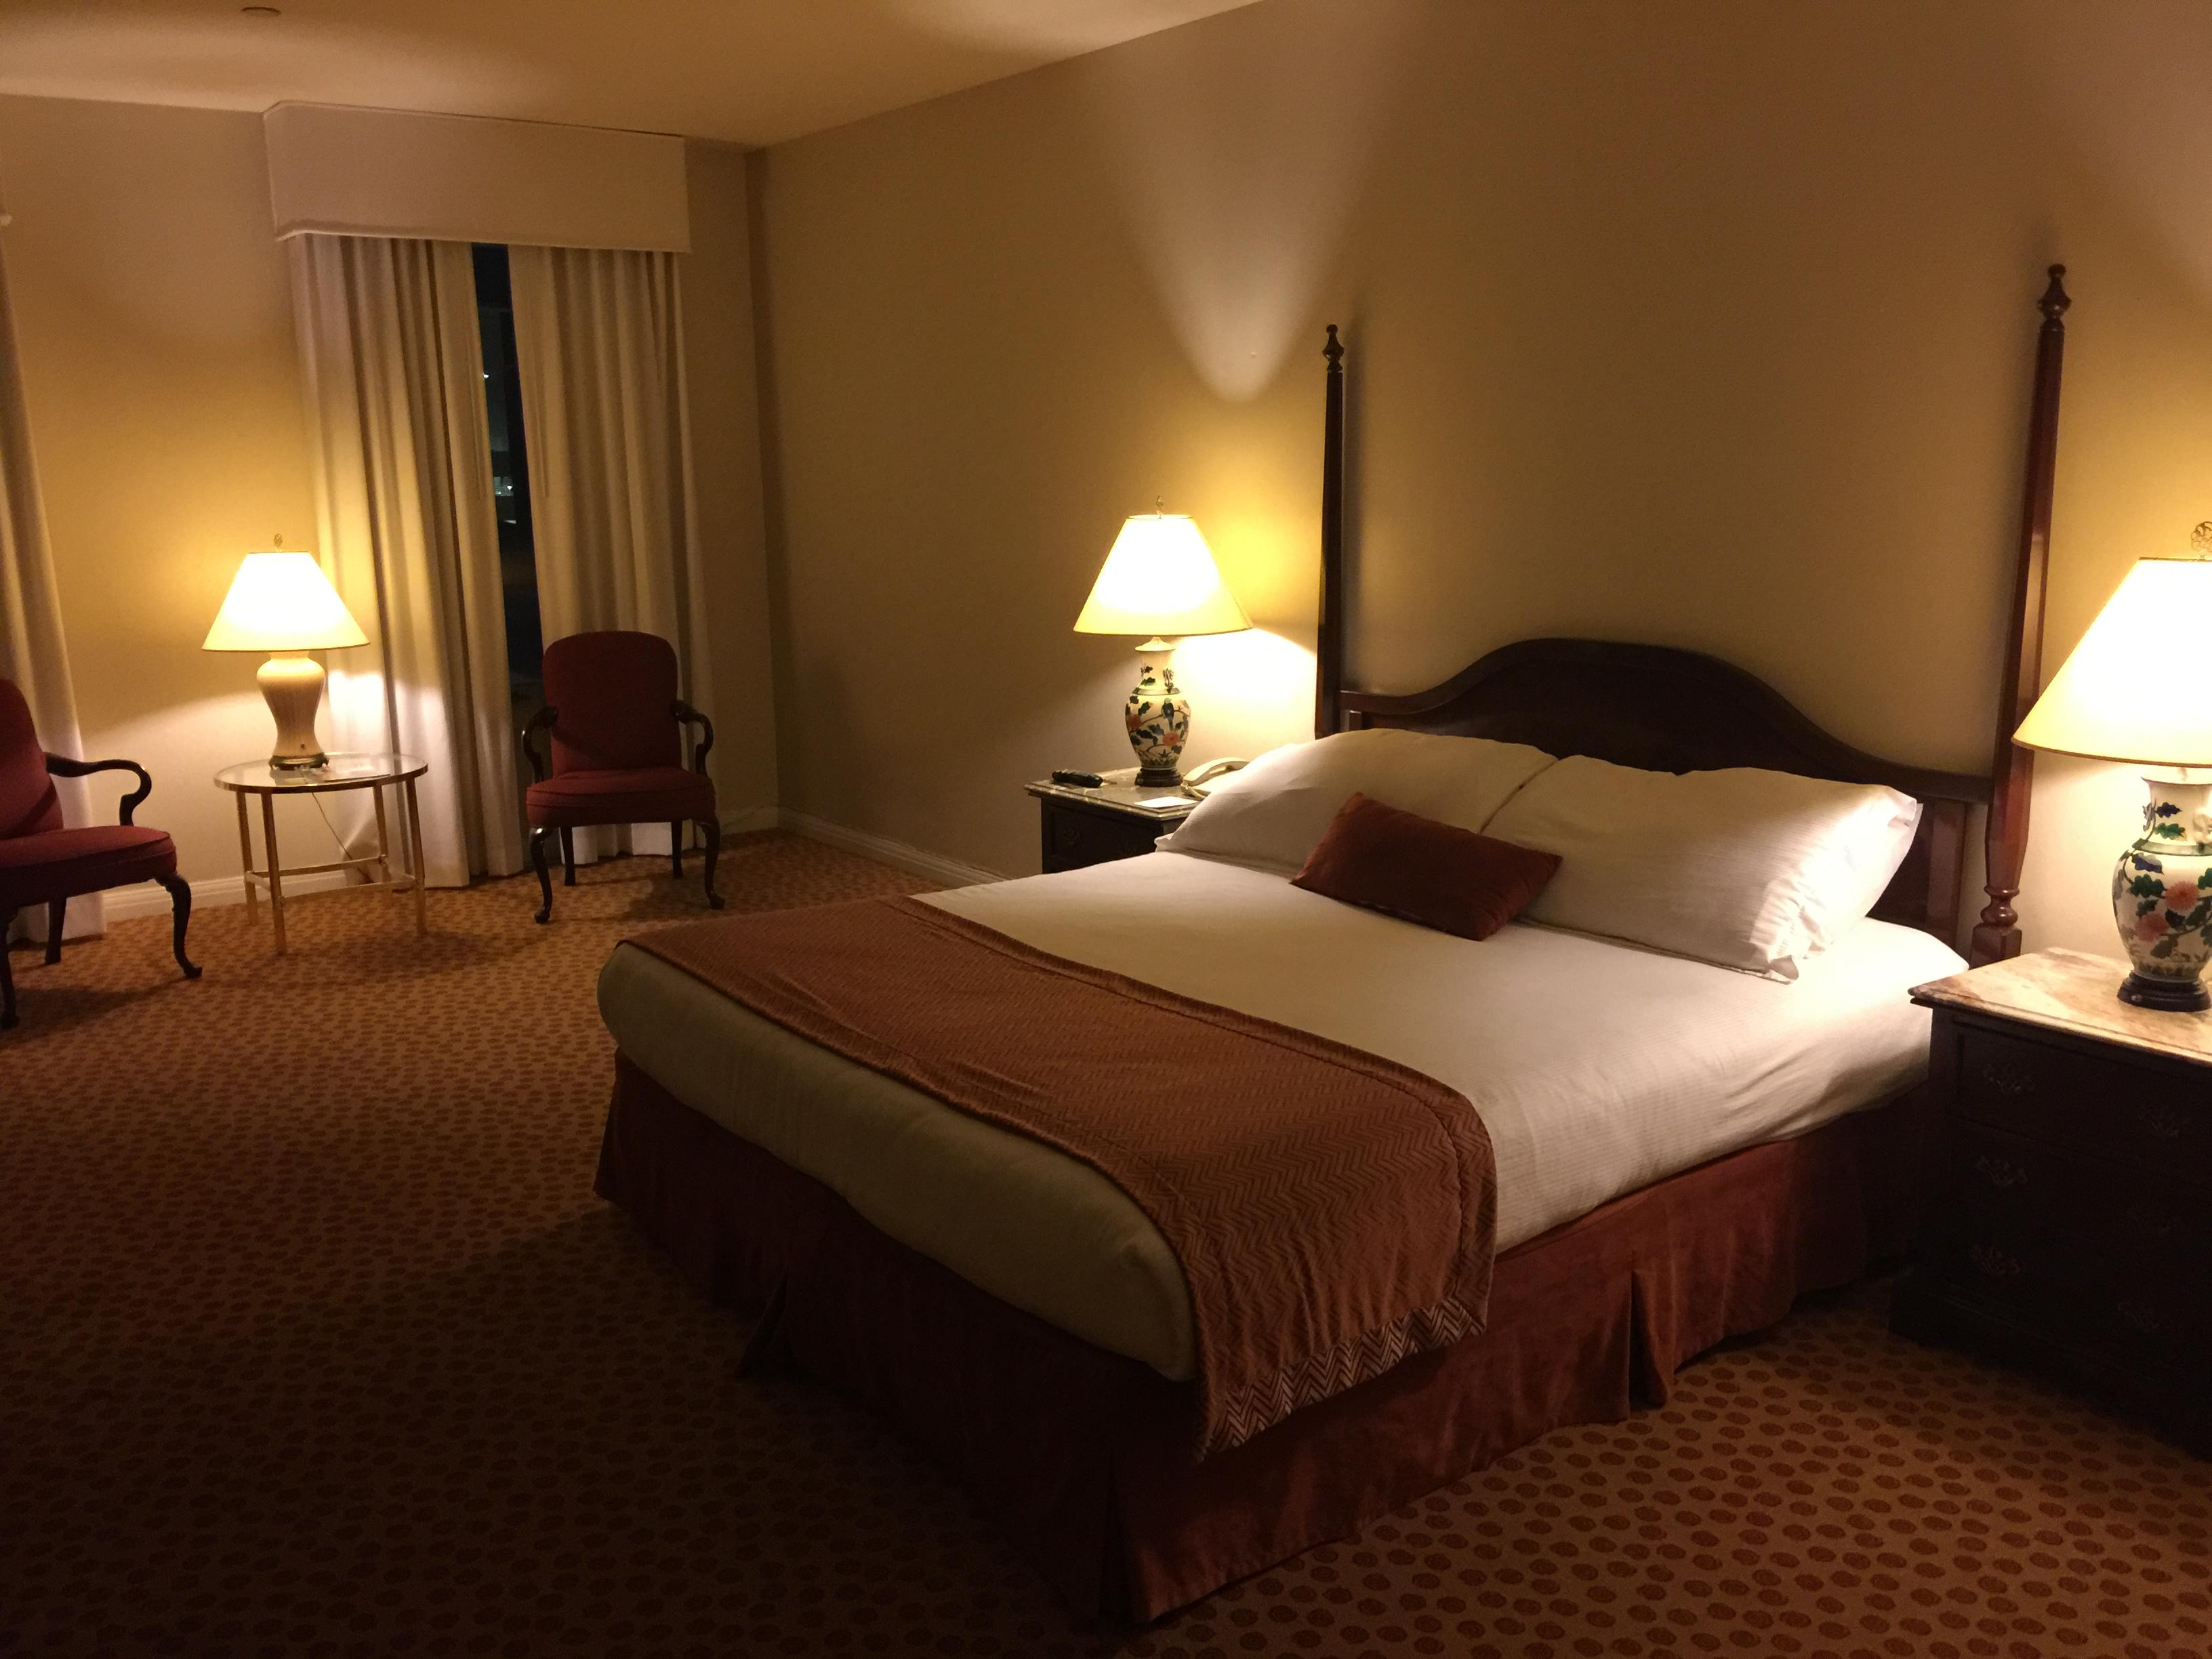 Camino Real Hotel El Paso upgraded rooms with flat screen televisions and large beds for l